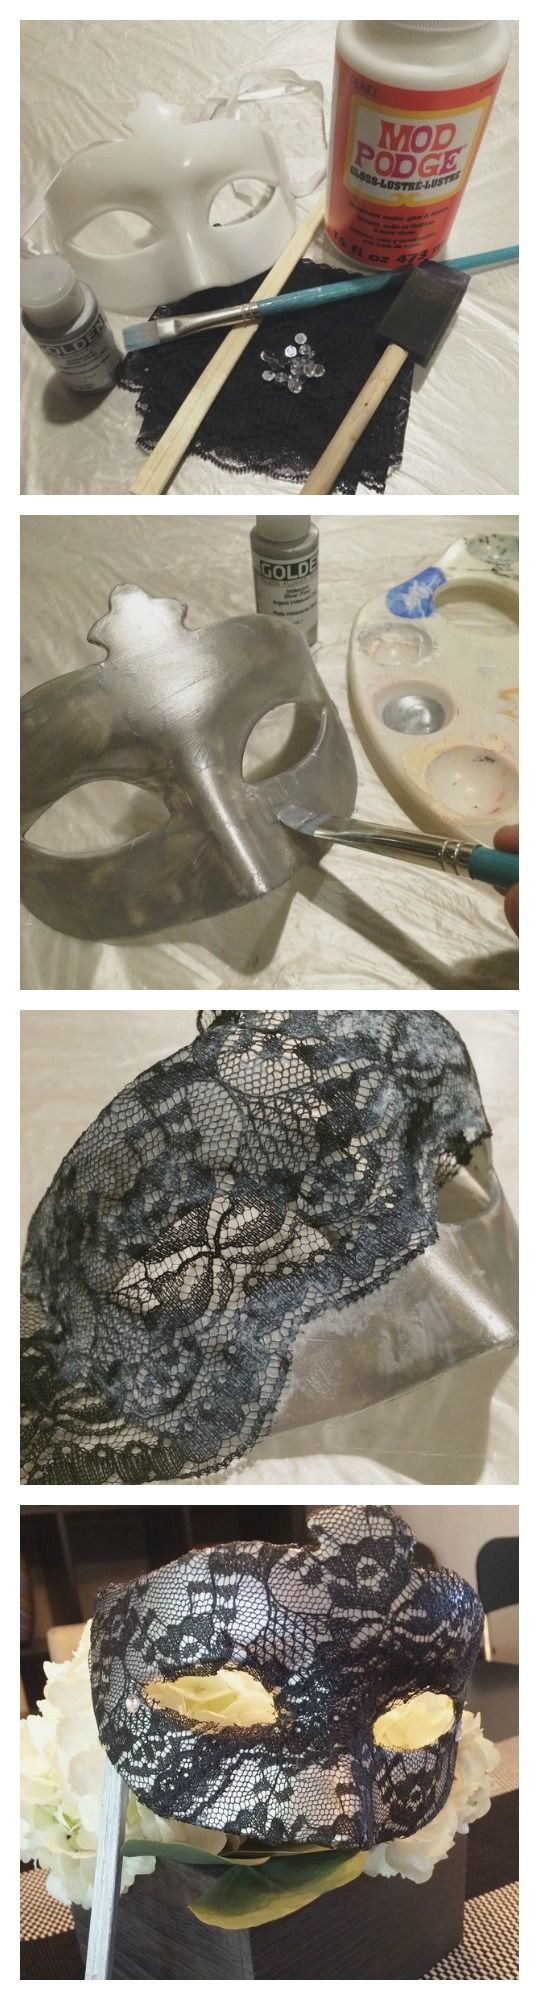 Getting ready for the ball?  Or maybe just a party?  Make your own Masquerade mask!  #DIY